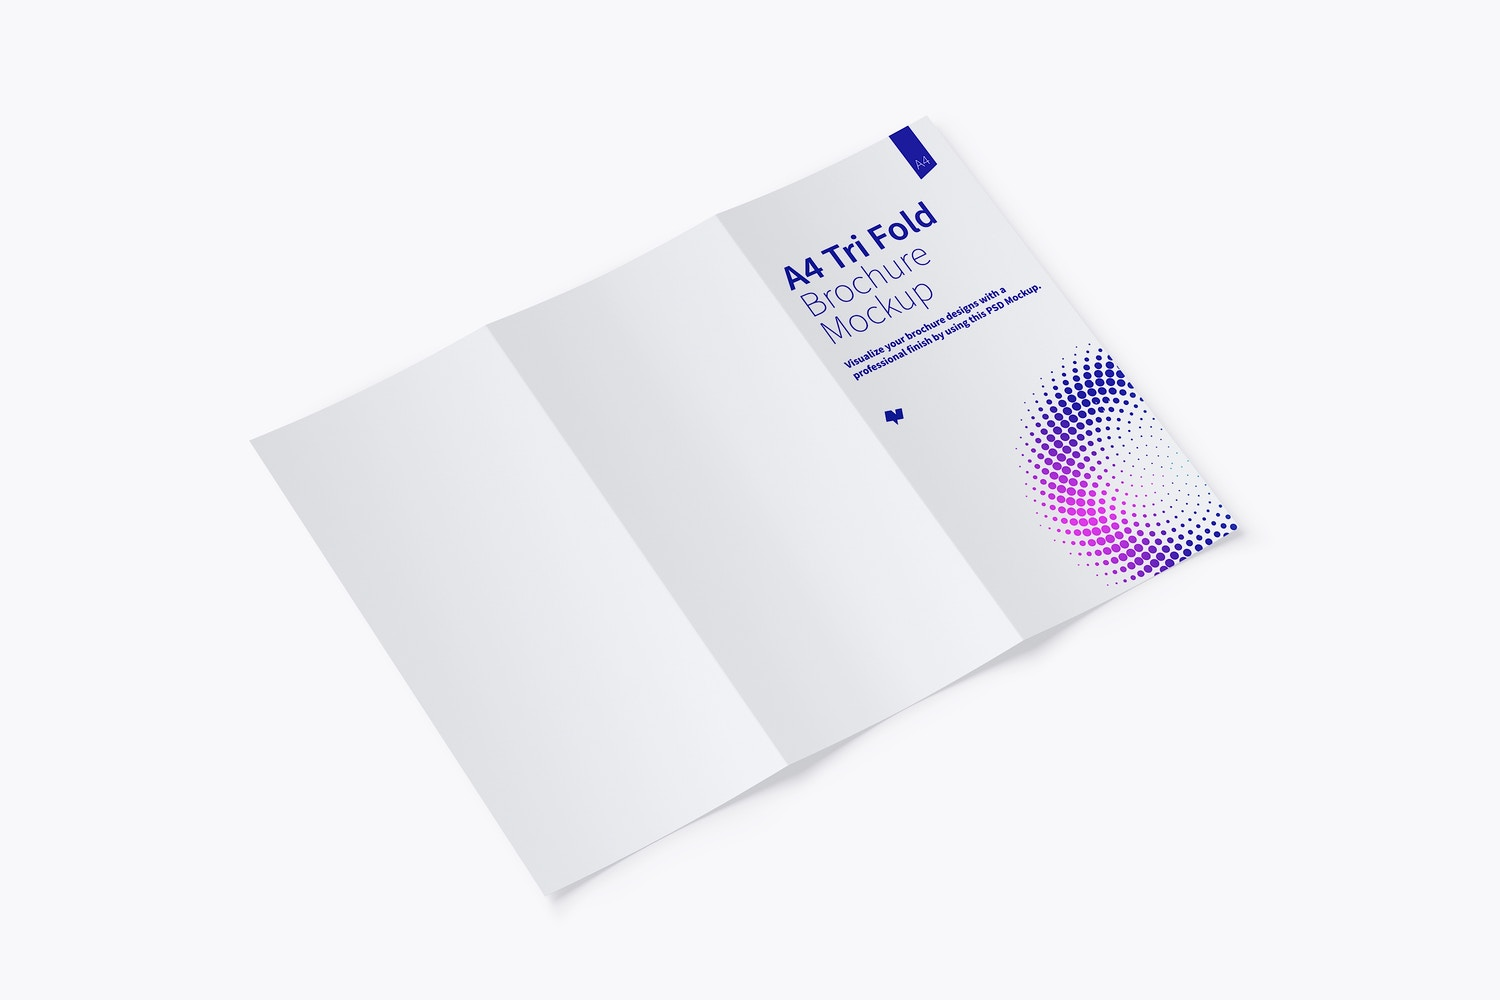 A4 Trifold Brochure Mockup 02 by Original Mockups on Original Mockups